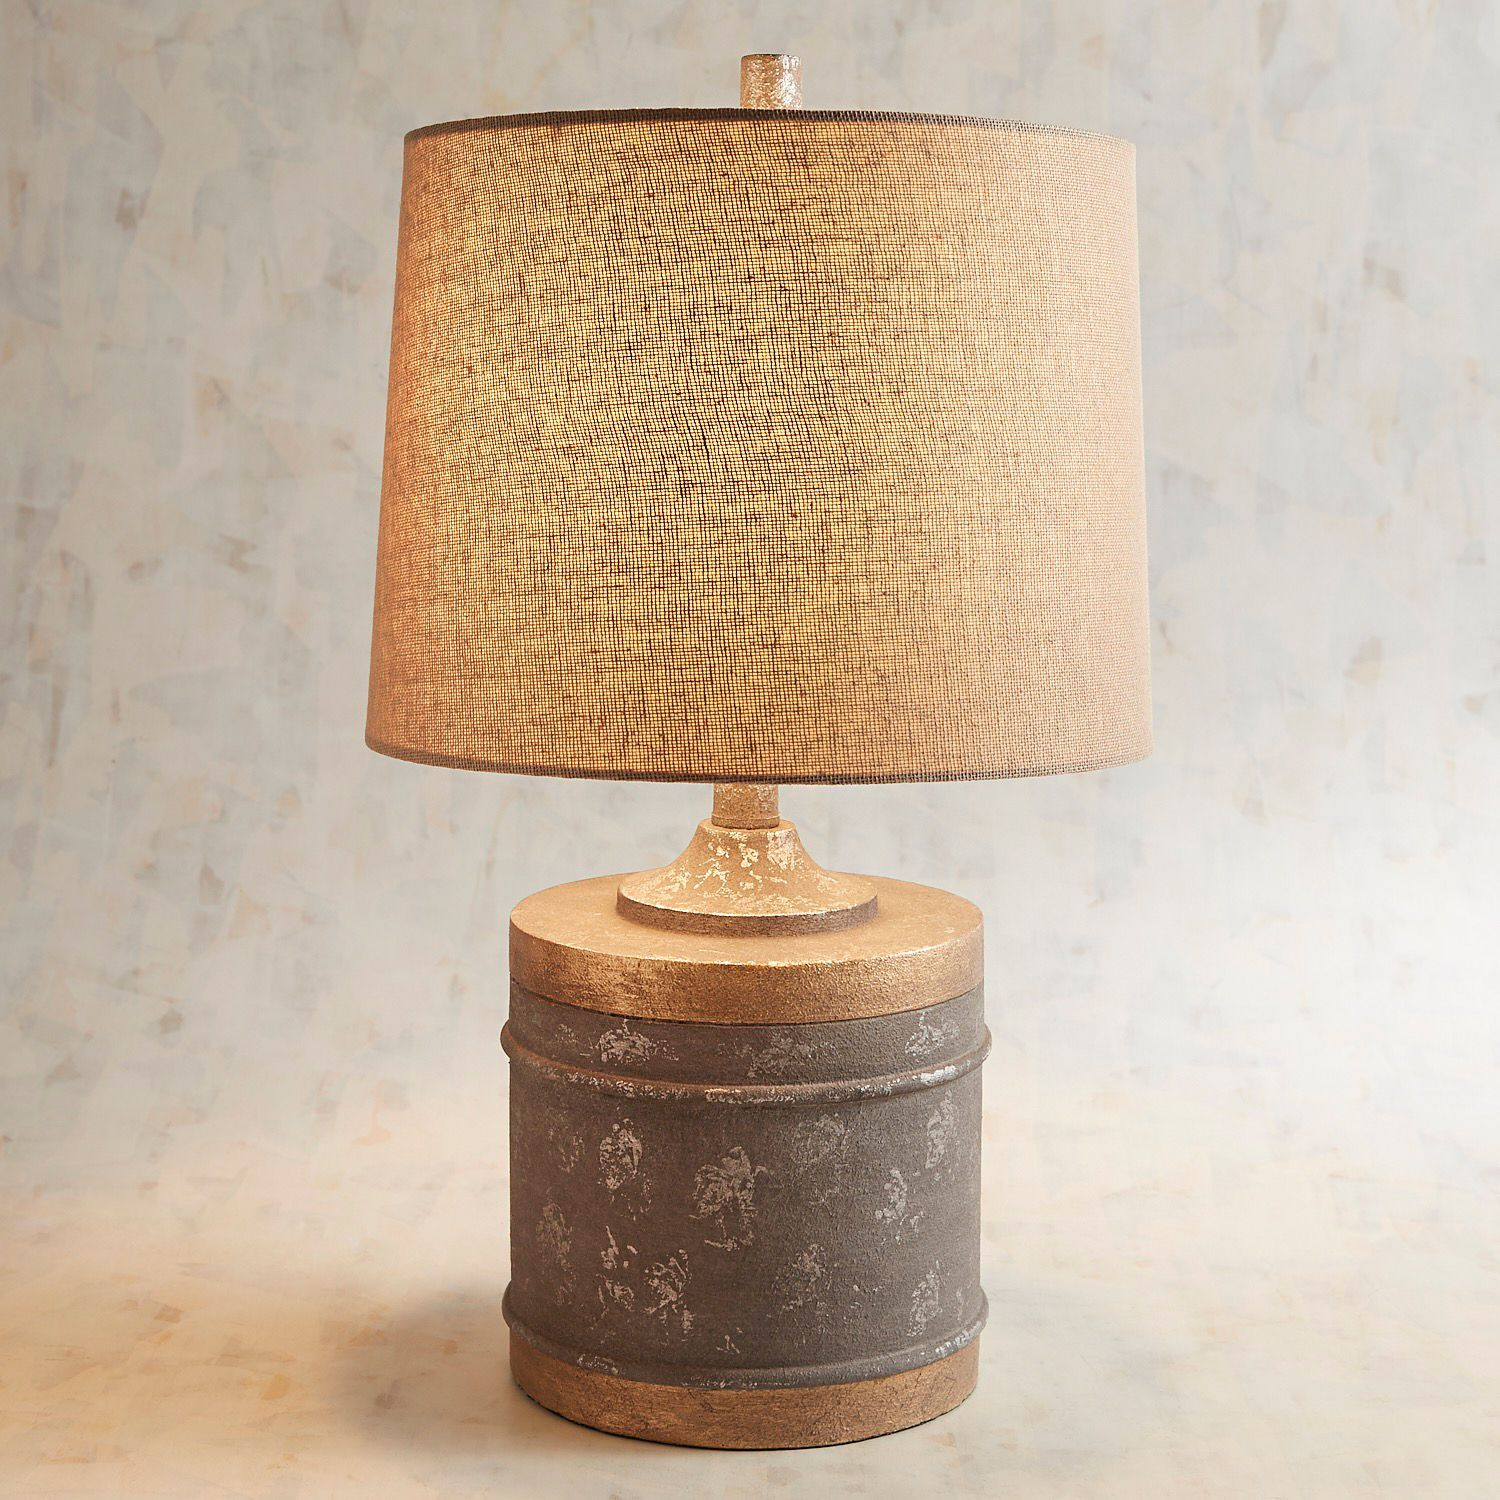 jackson accent table lamp lighting lamps pier one pottery barn ikea small square glass chinese shades pool furniture fancy bedside tables console cabinet cordless for living room